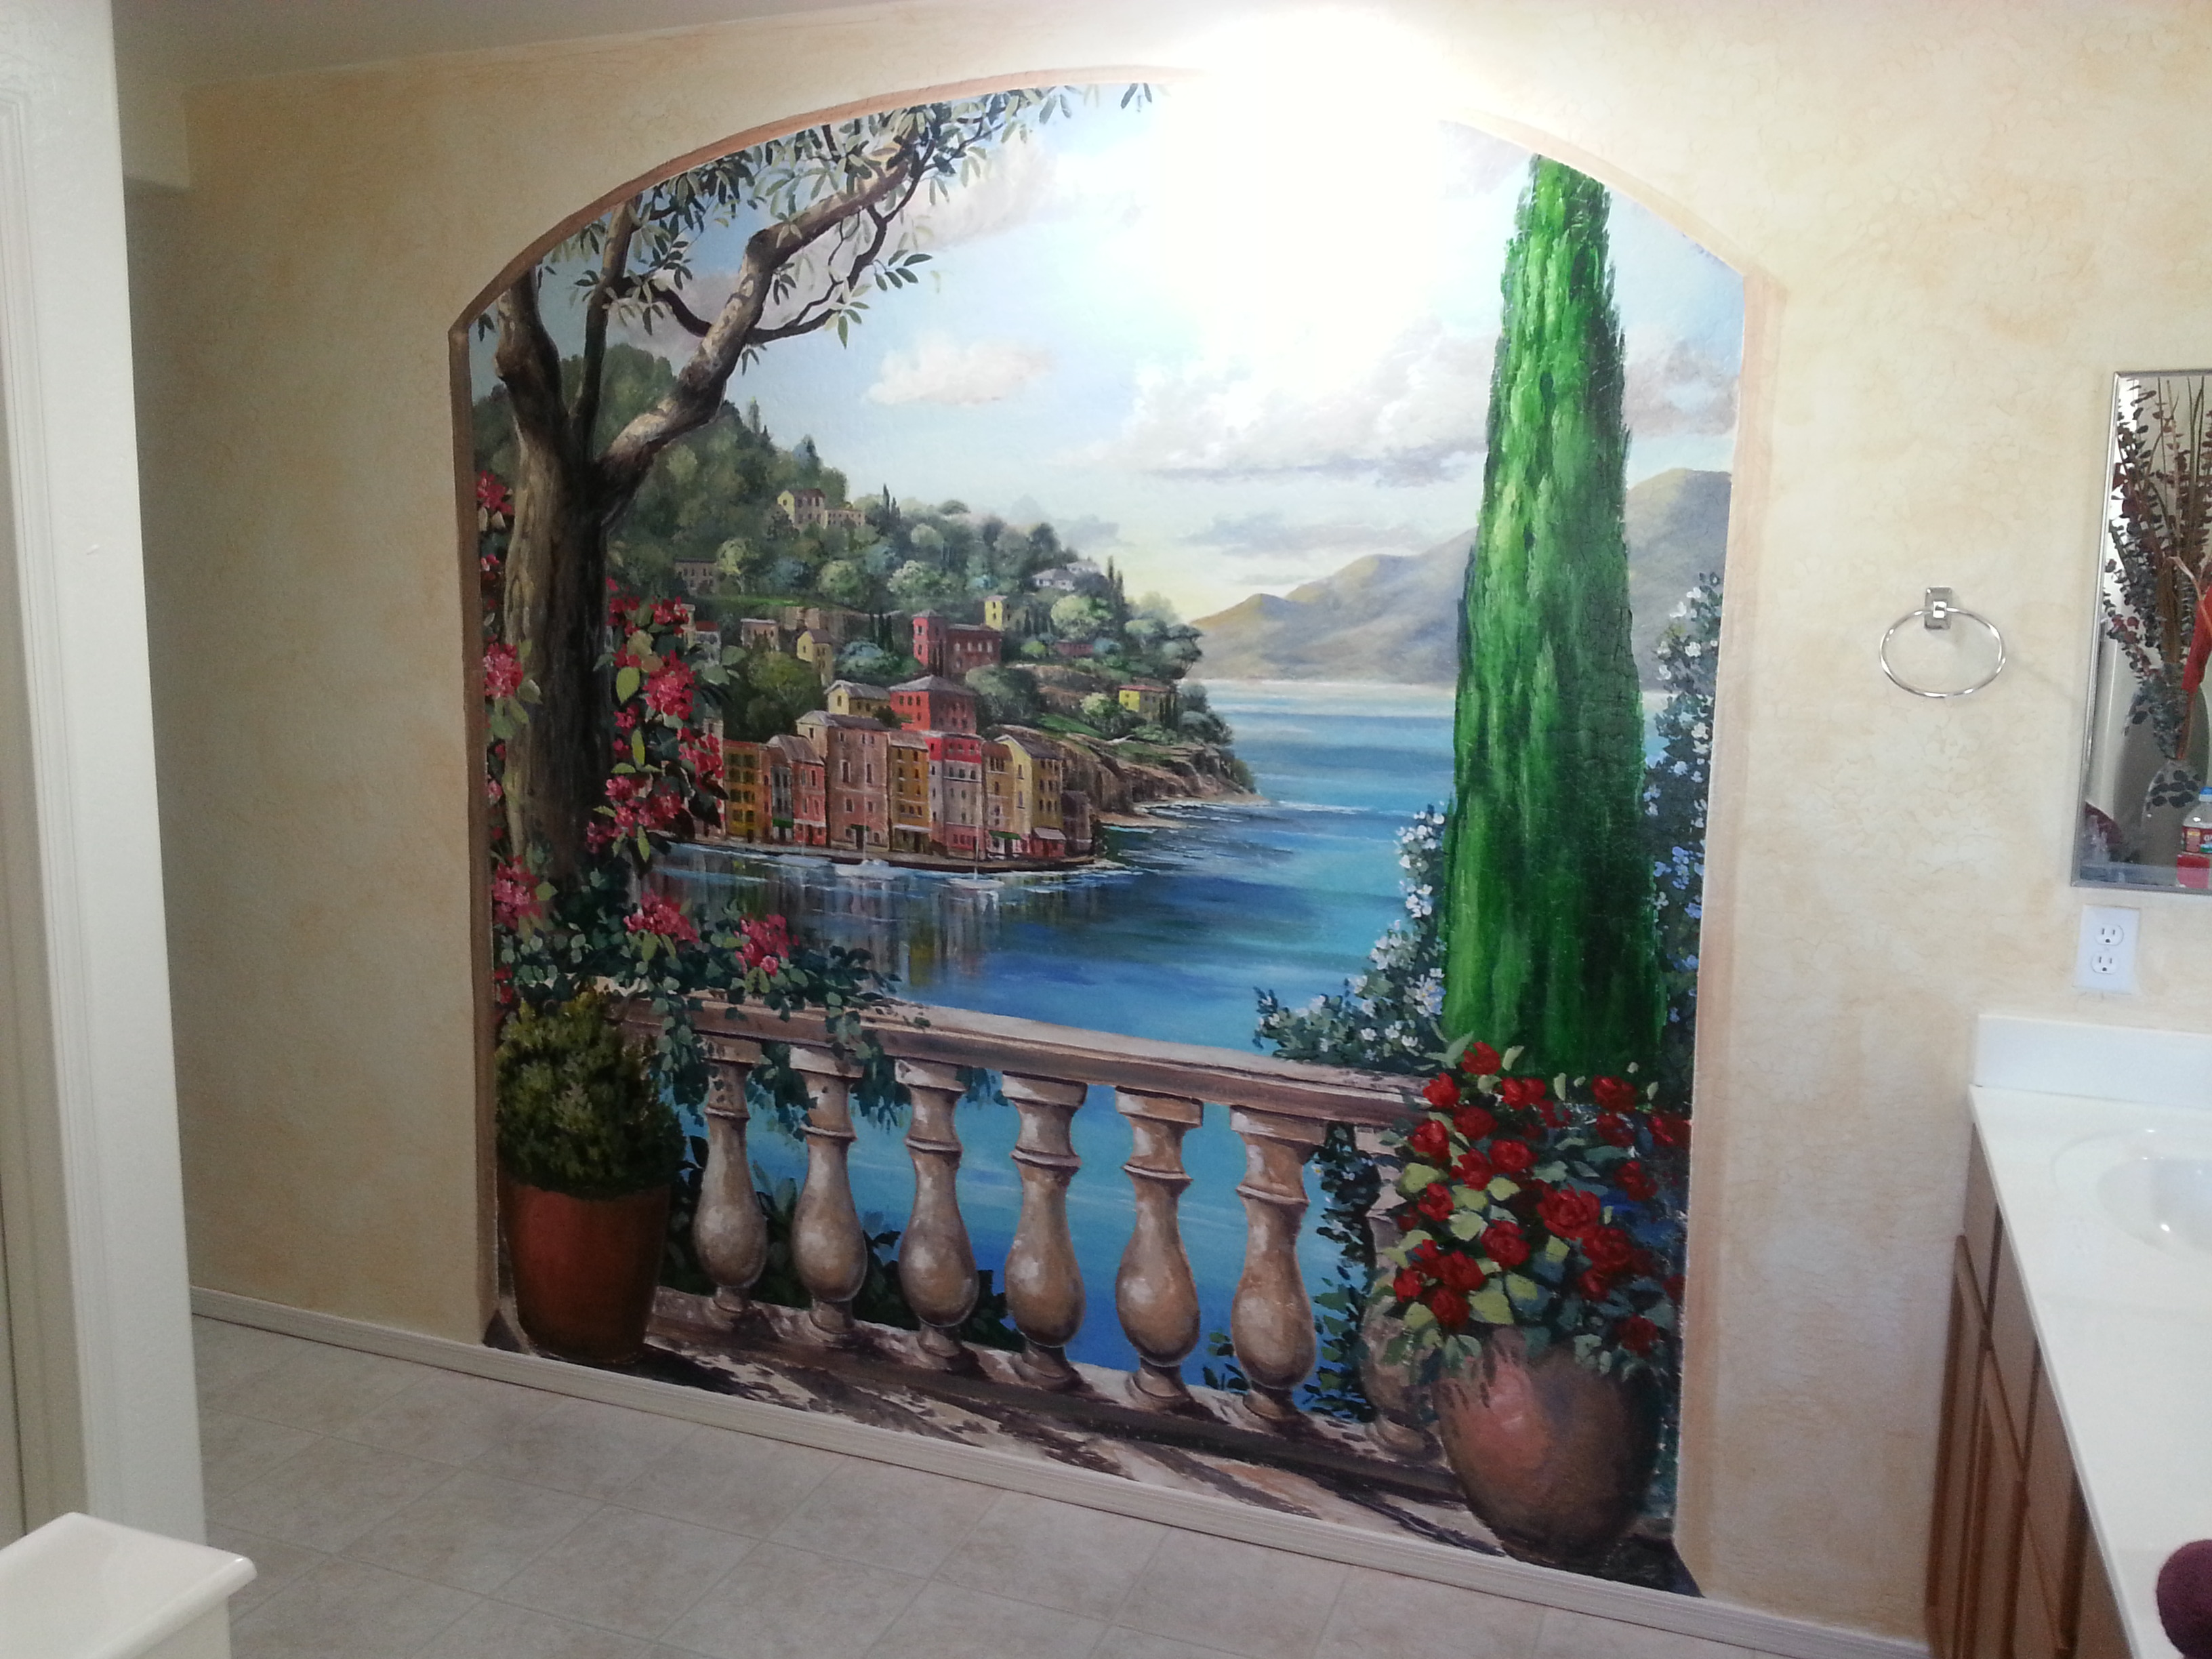 Large Wall Murals For Sale 2014 Hot Sale Wallpapers Papel